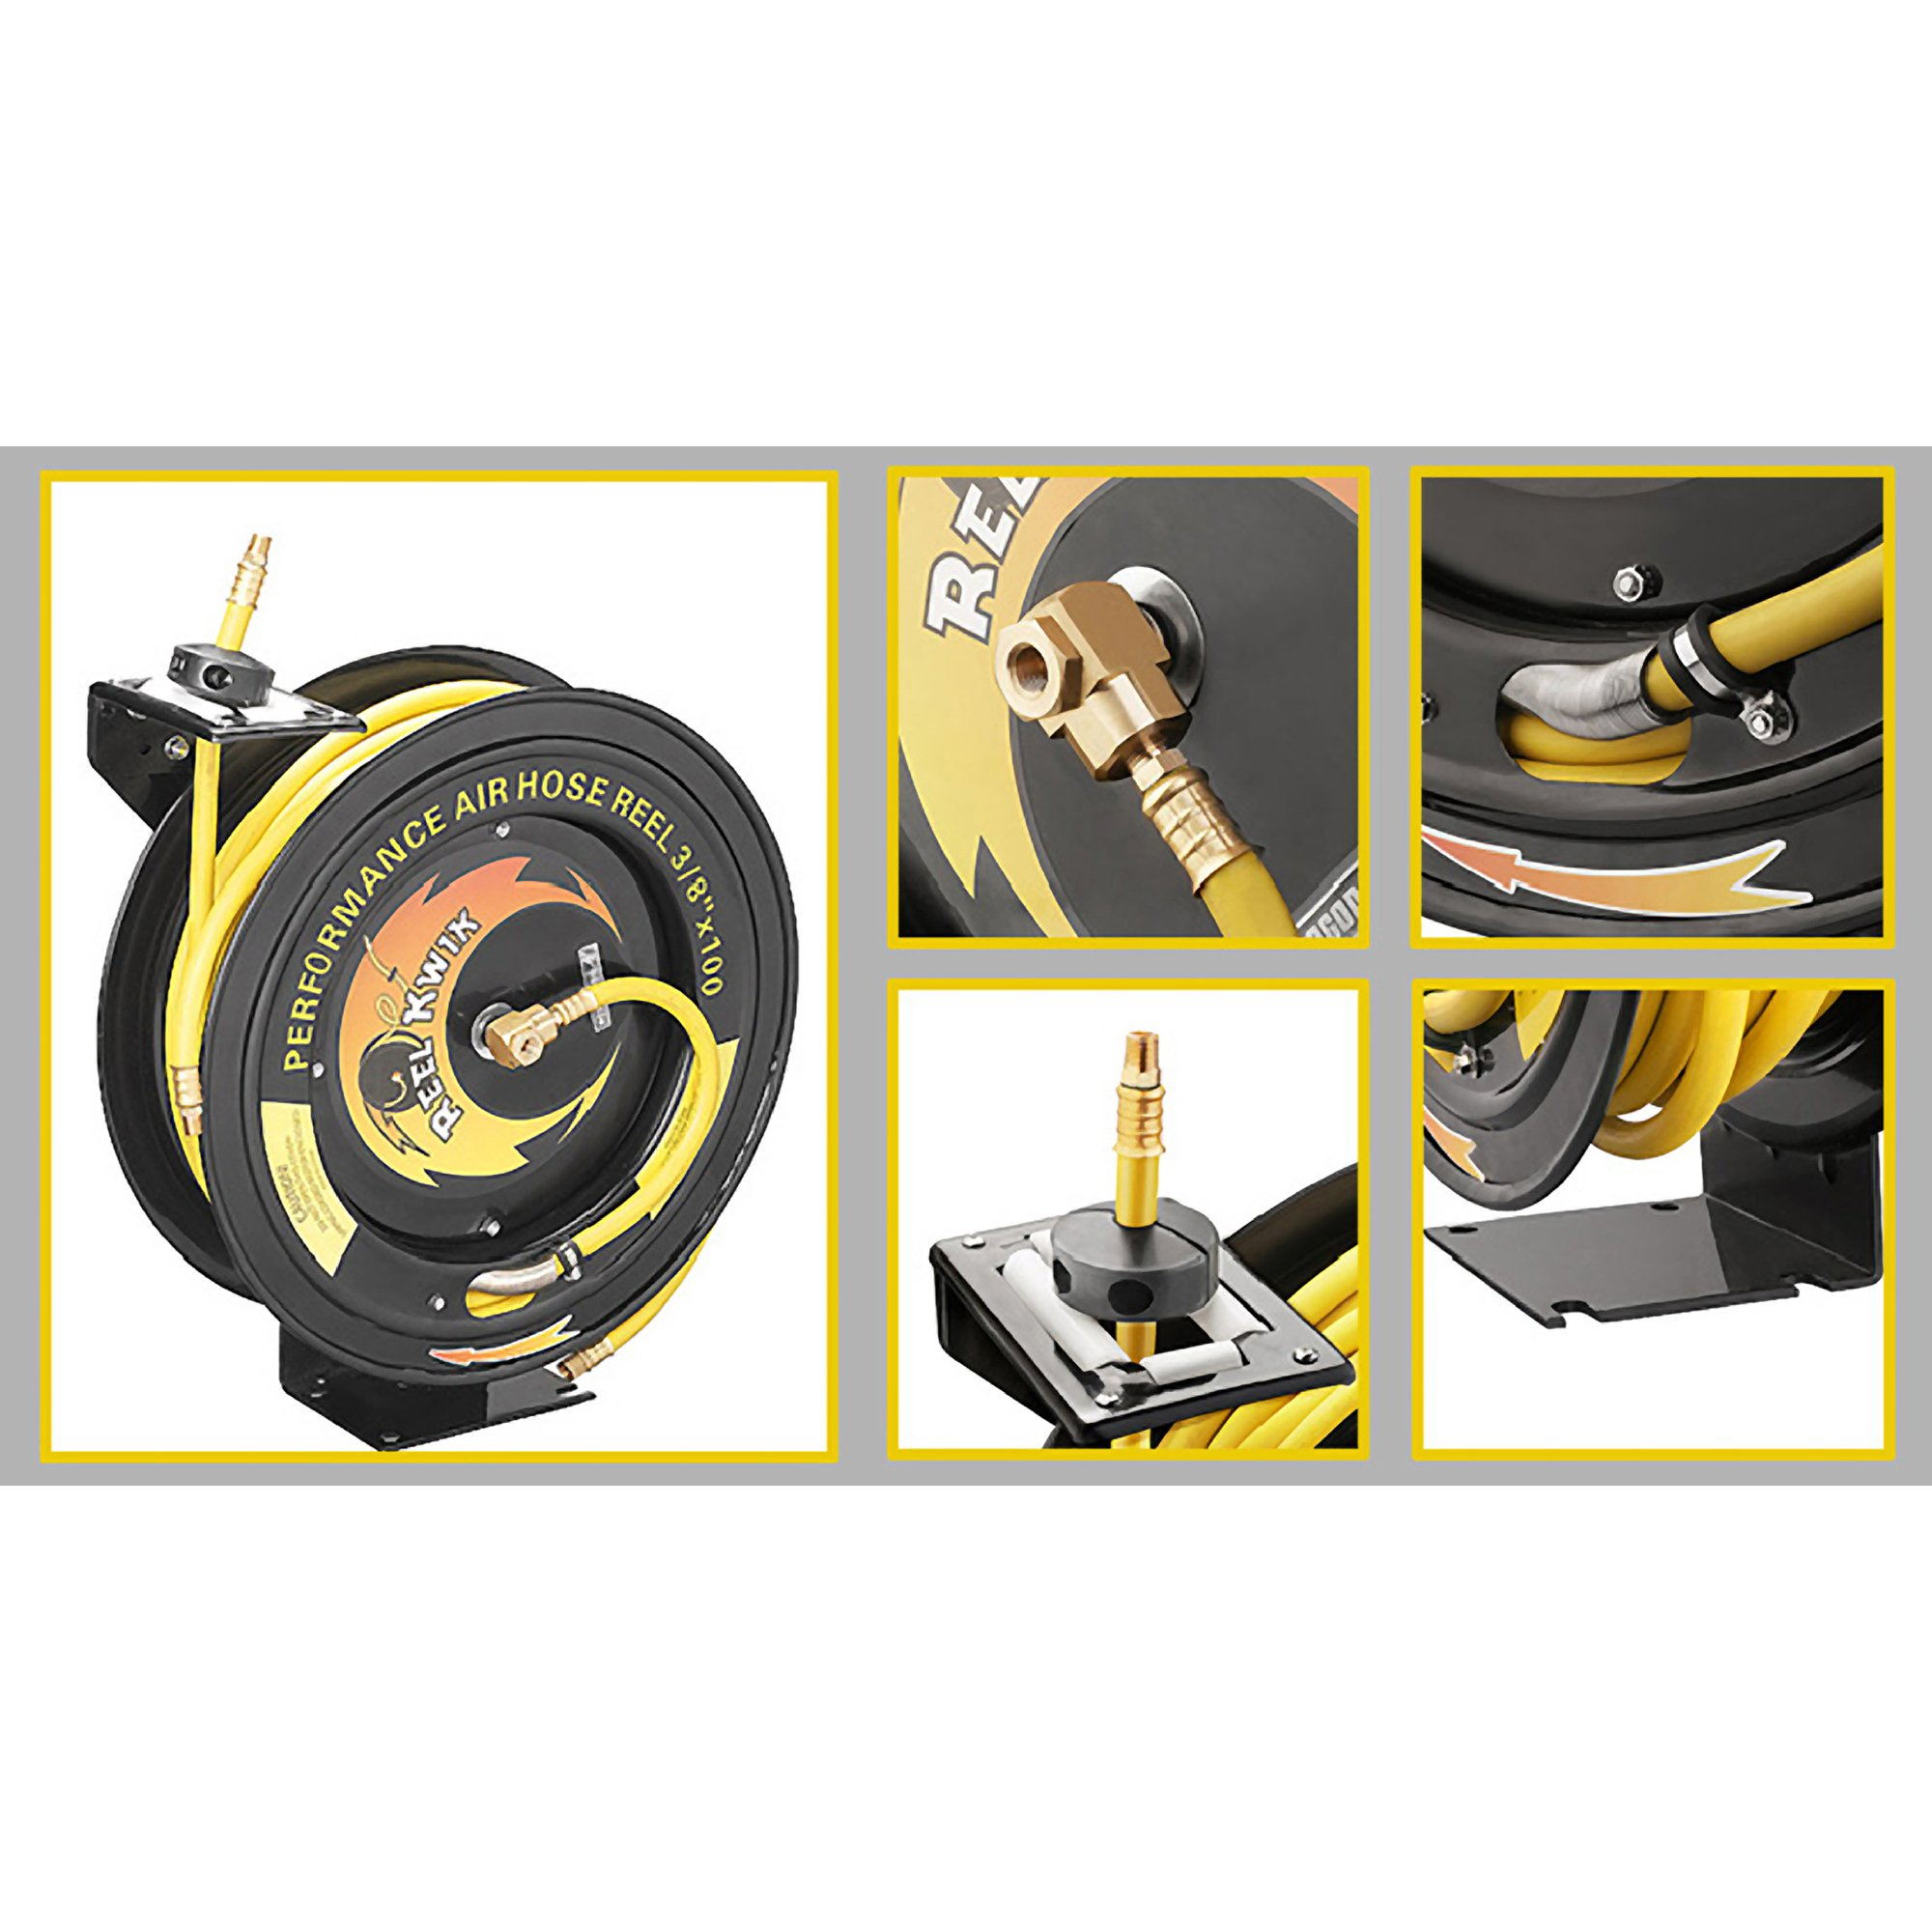 Pentagon Tools 3260 Reel Kwik Air Hose Reel, 100' by Pentagon Tools